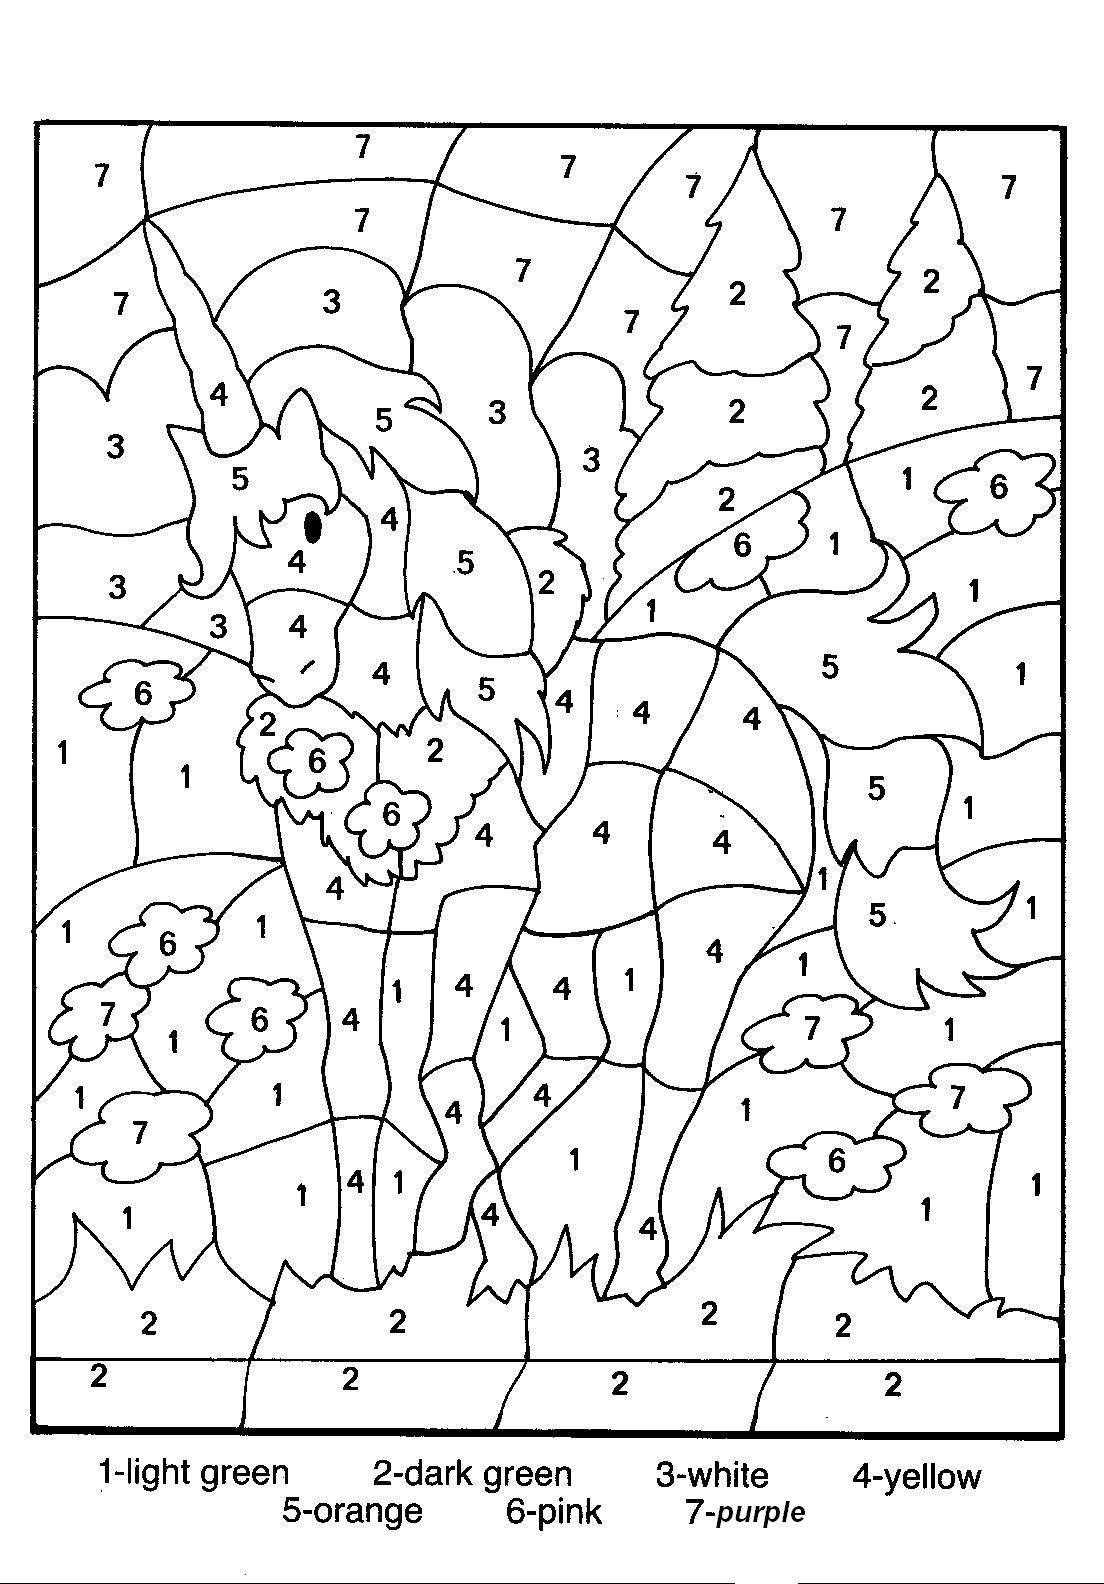 Free printable coloring pages unicorns - Free Printable Color By Number Coloring Pages Best Coloring Pages For Kids